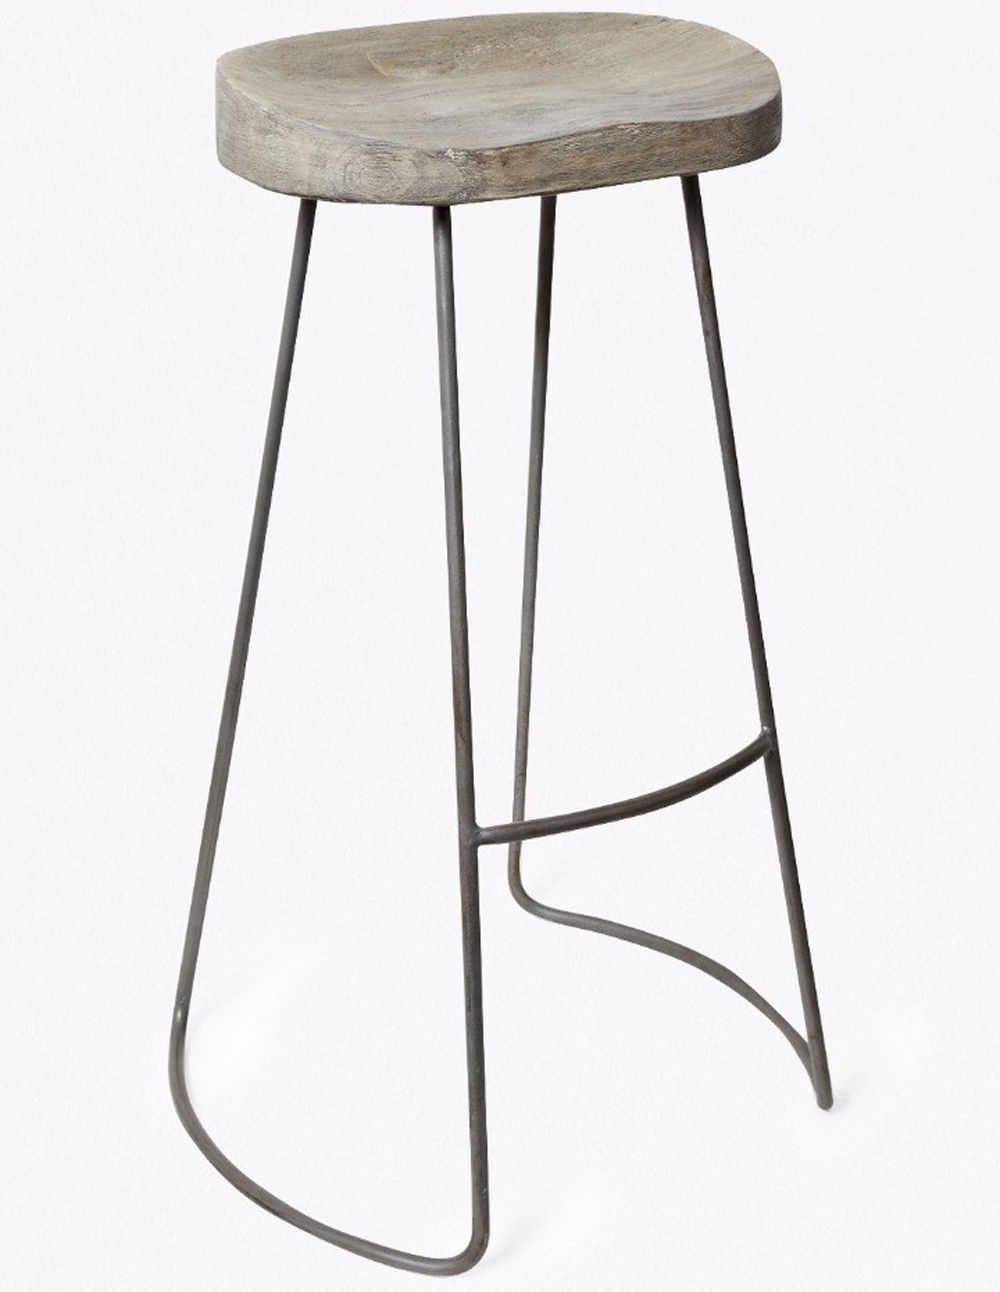 Weve picked the best bar stools for kitchen hangouts and informal dining at the breakfast bar